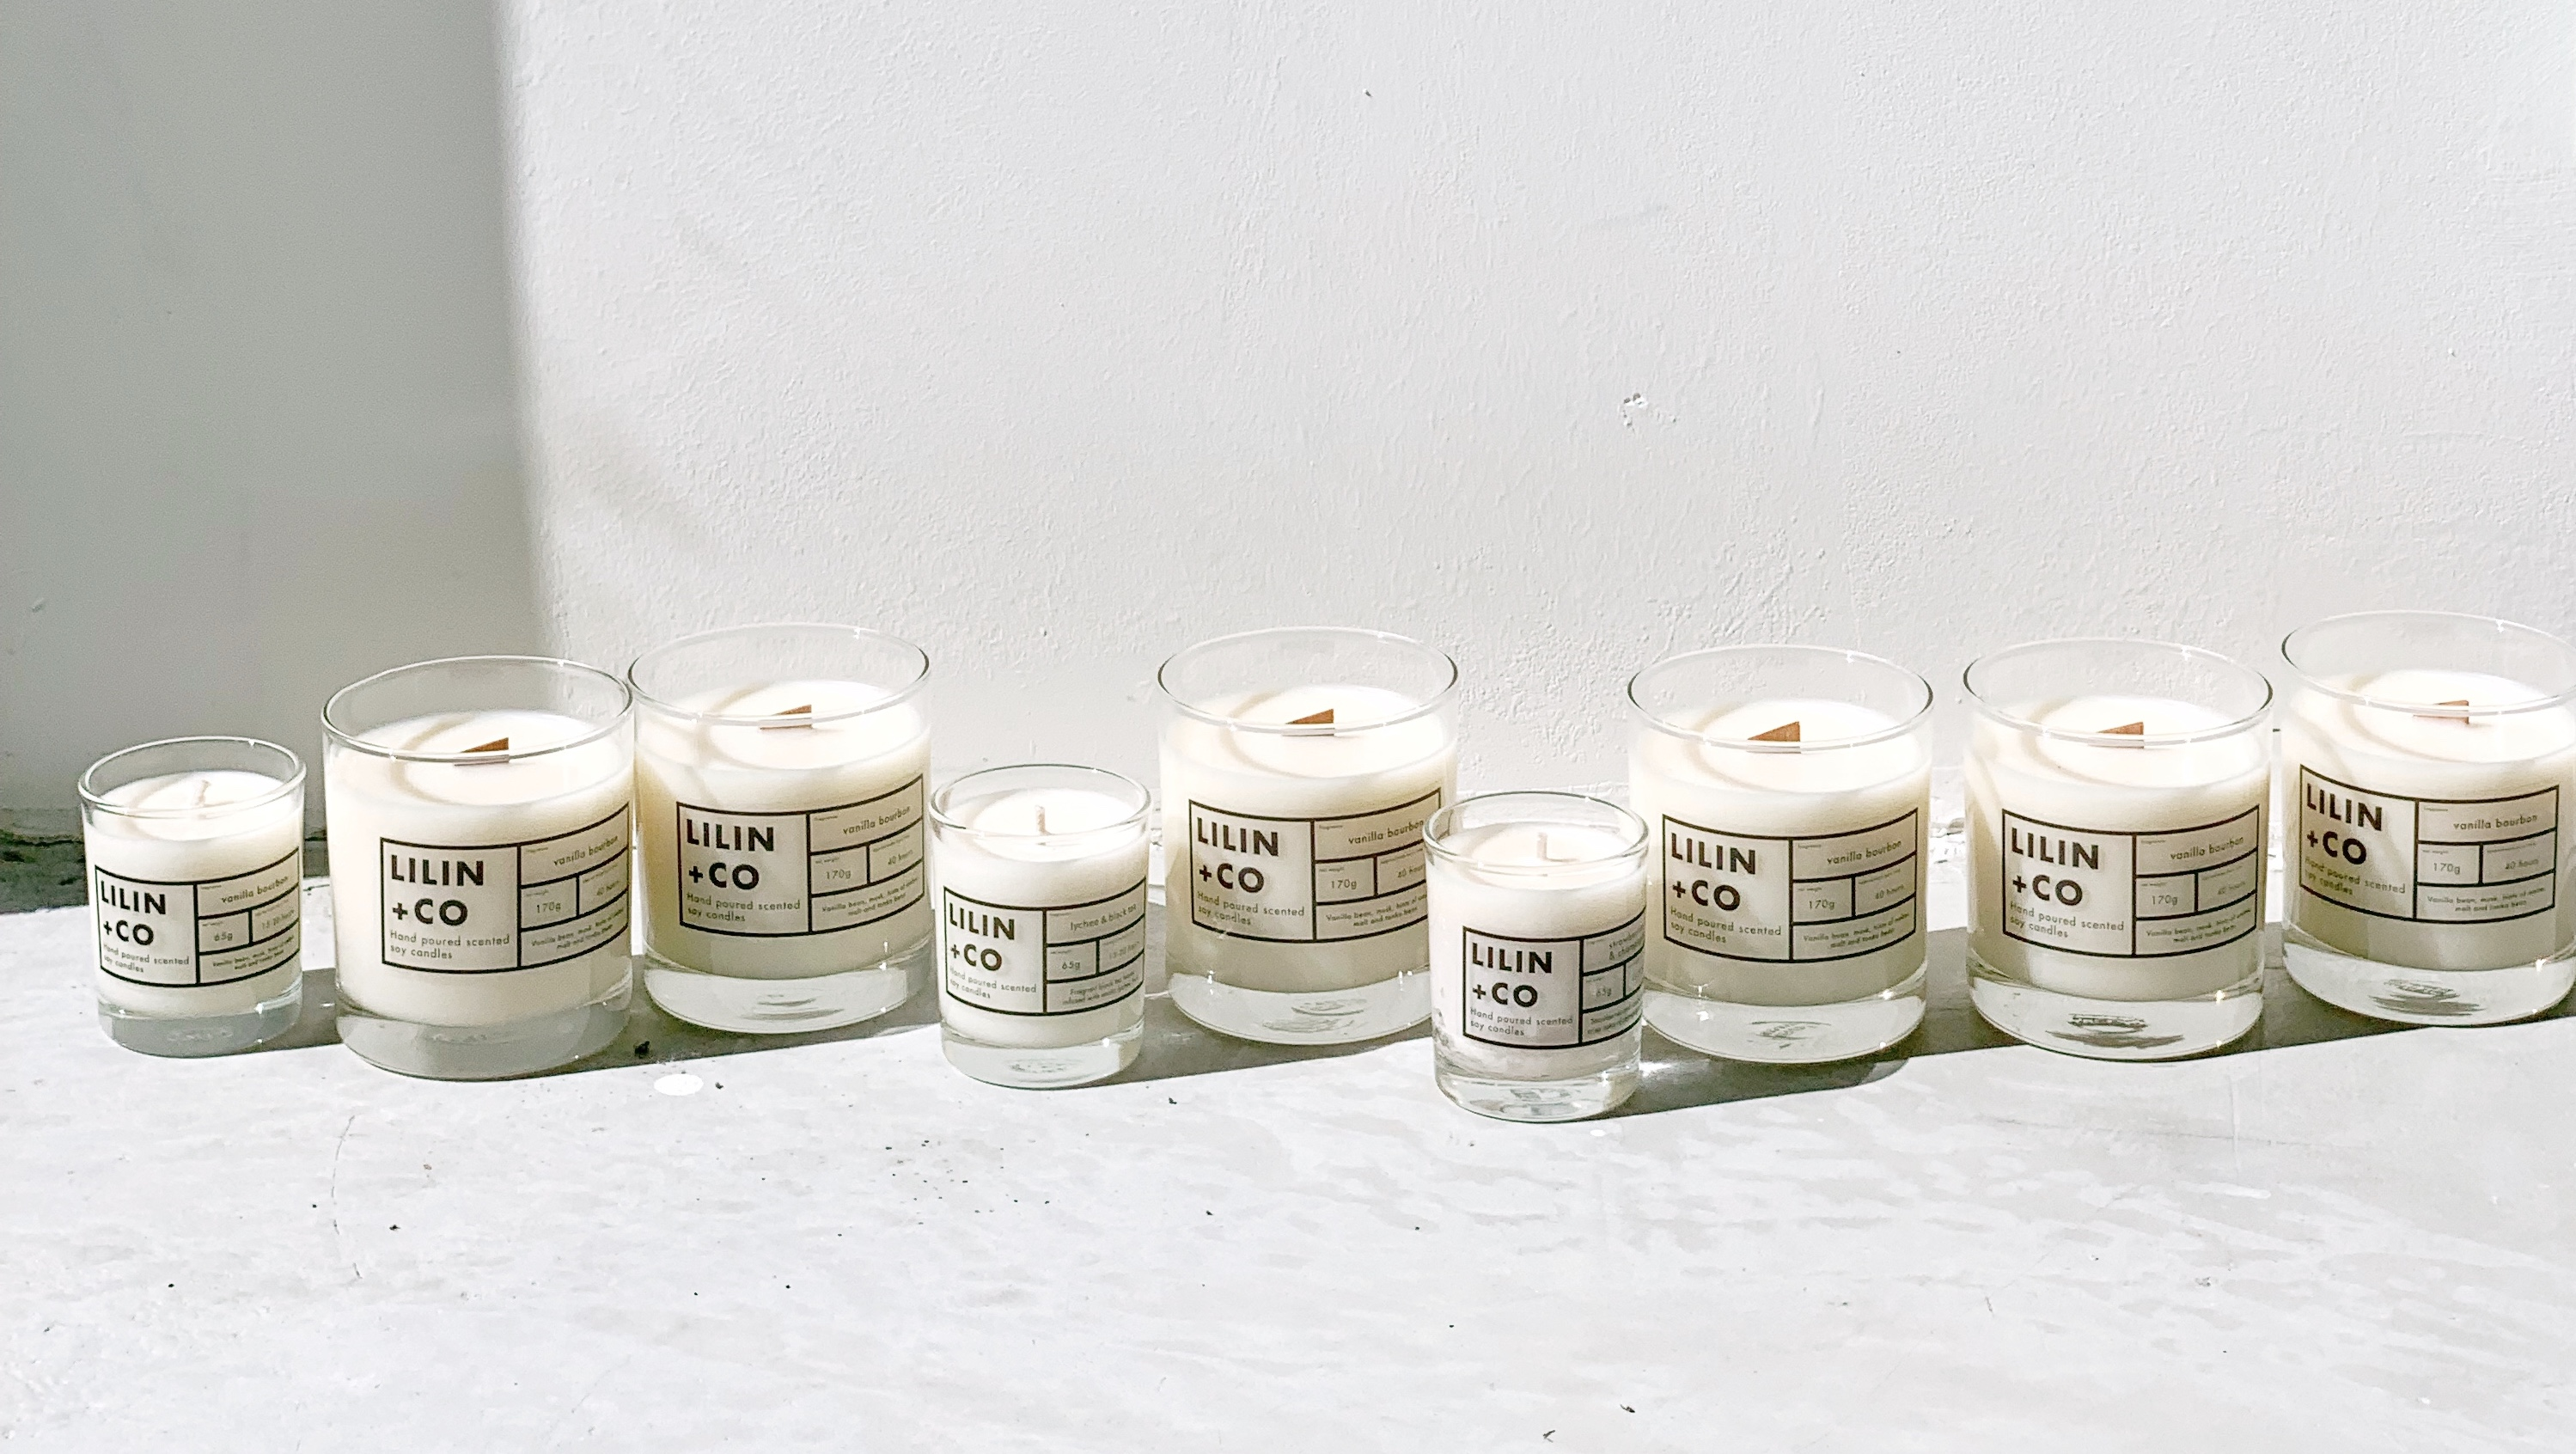 Homemade scented candles? Yes, please!